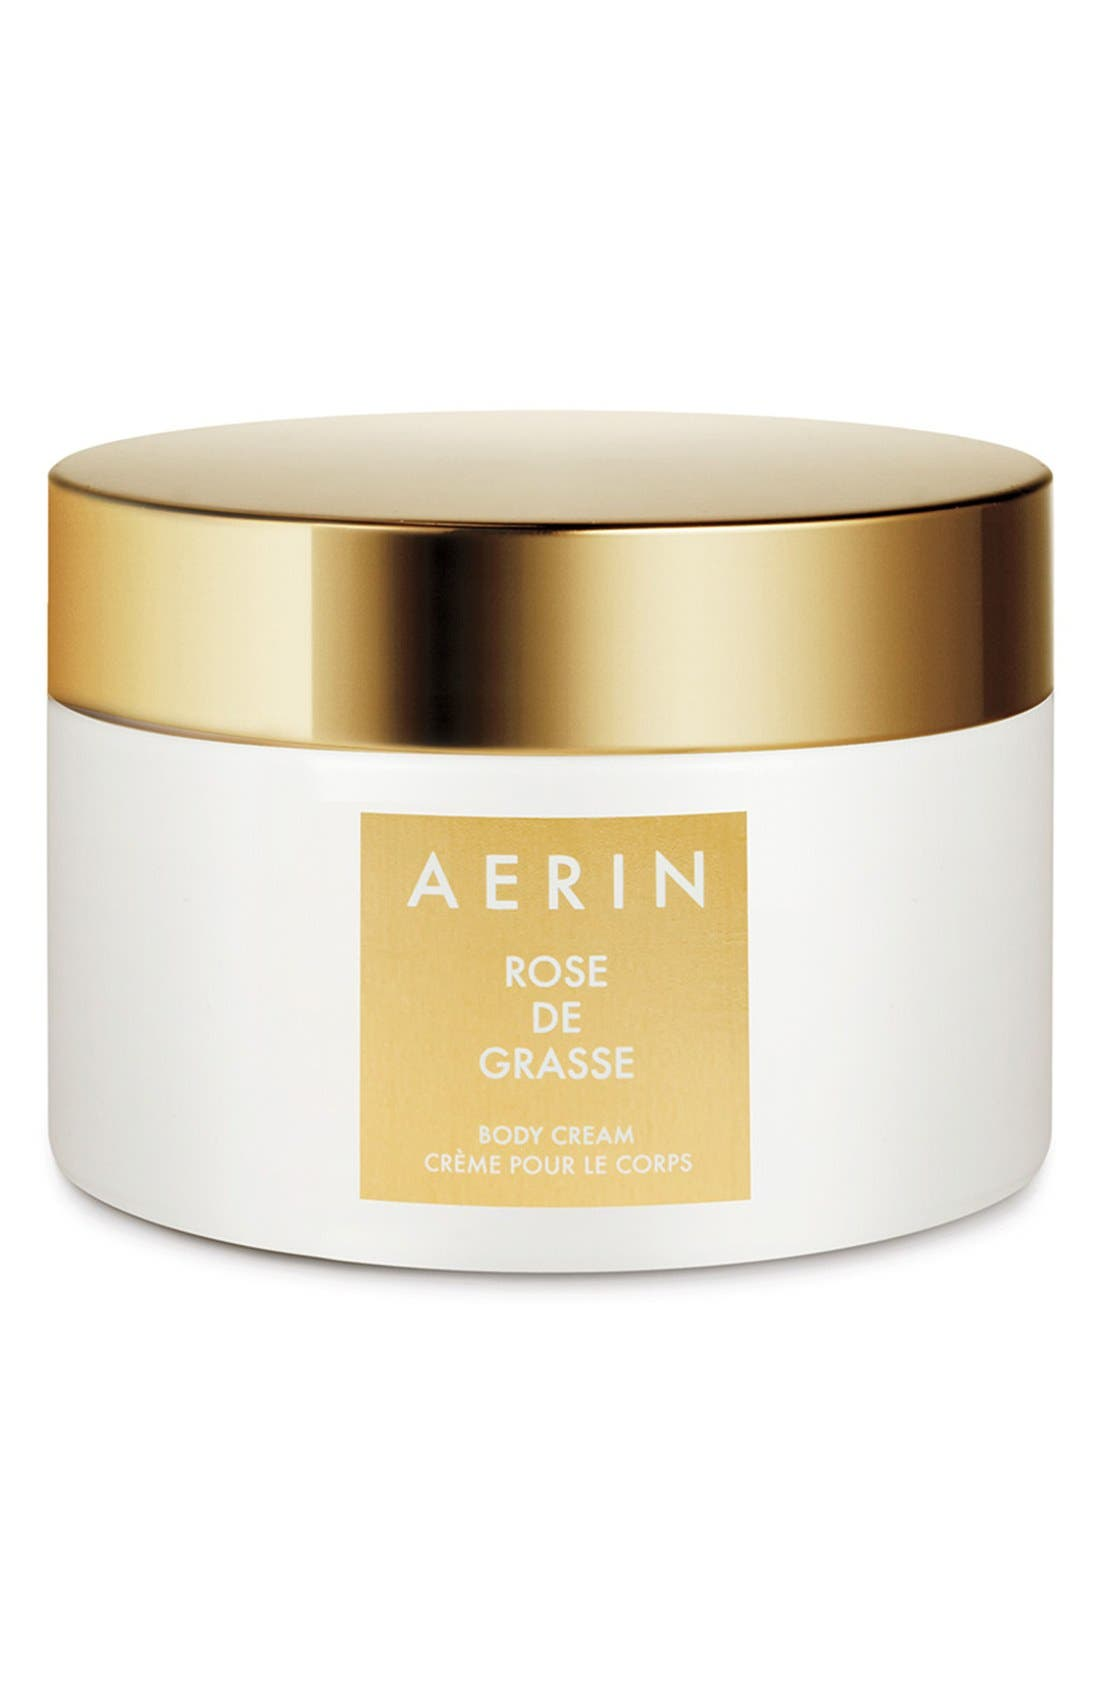 AERIN Beauty Rose de Grasse Body Cream (Limited Edition)